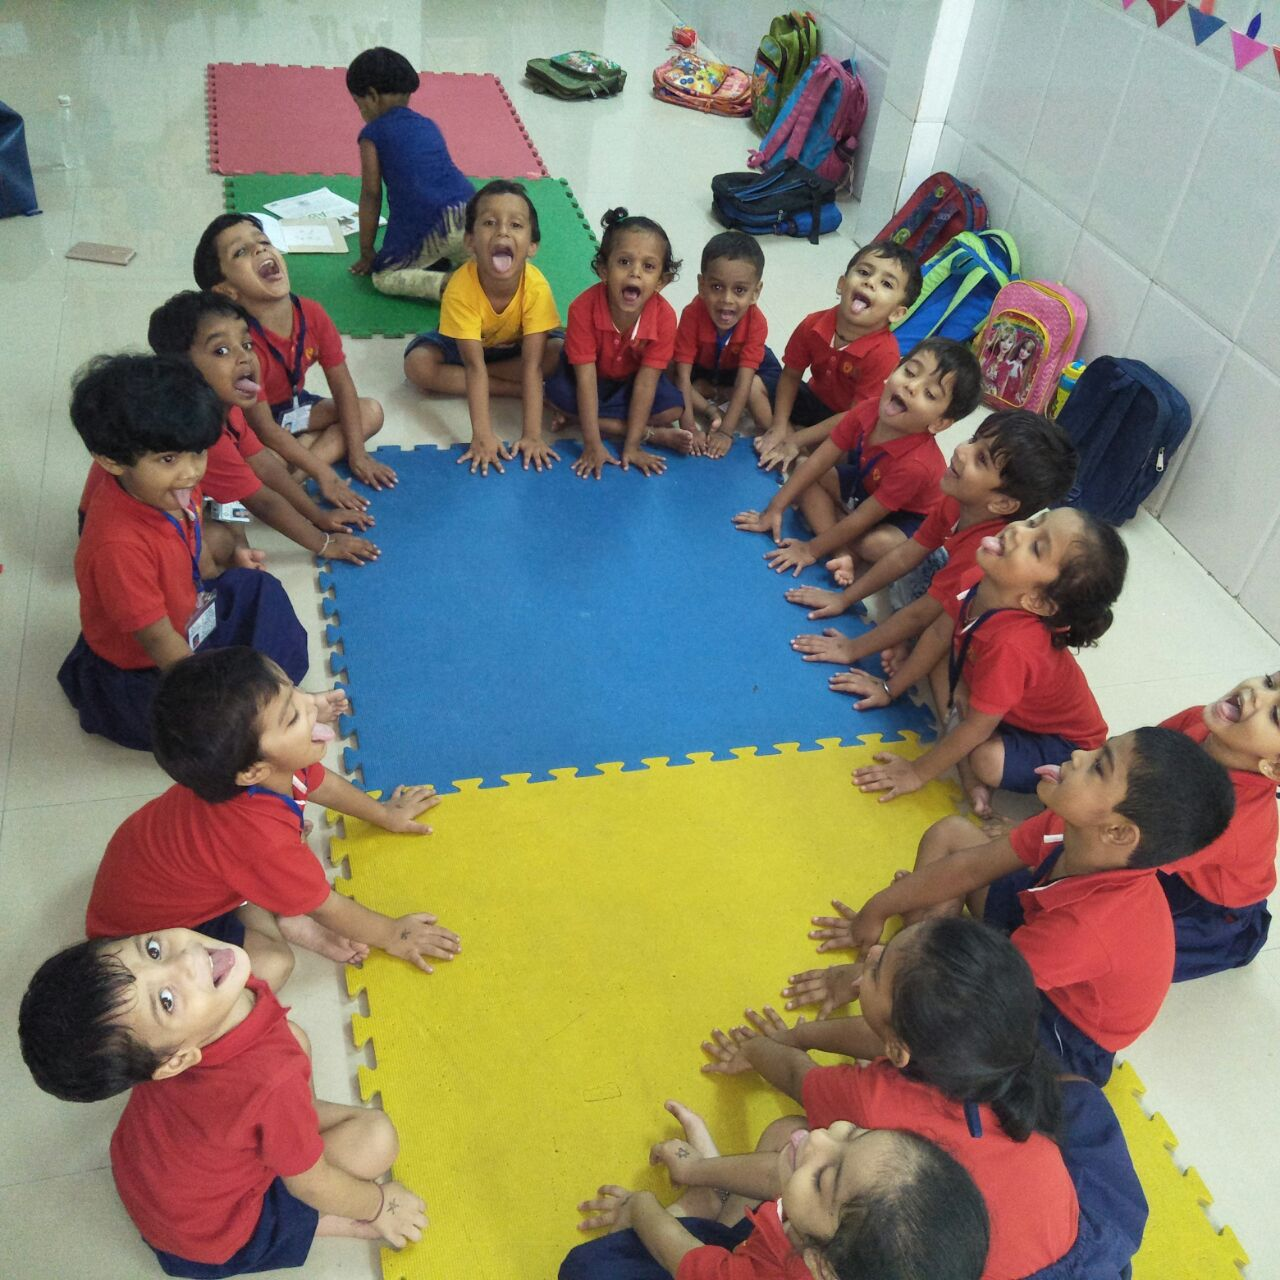 Running Coaching Classes with earning capacity of 3,00,000 per month, for Sale in Mumbai.